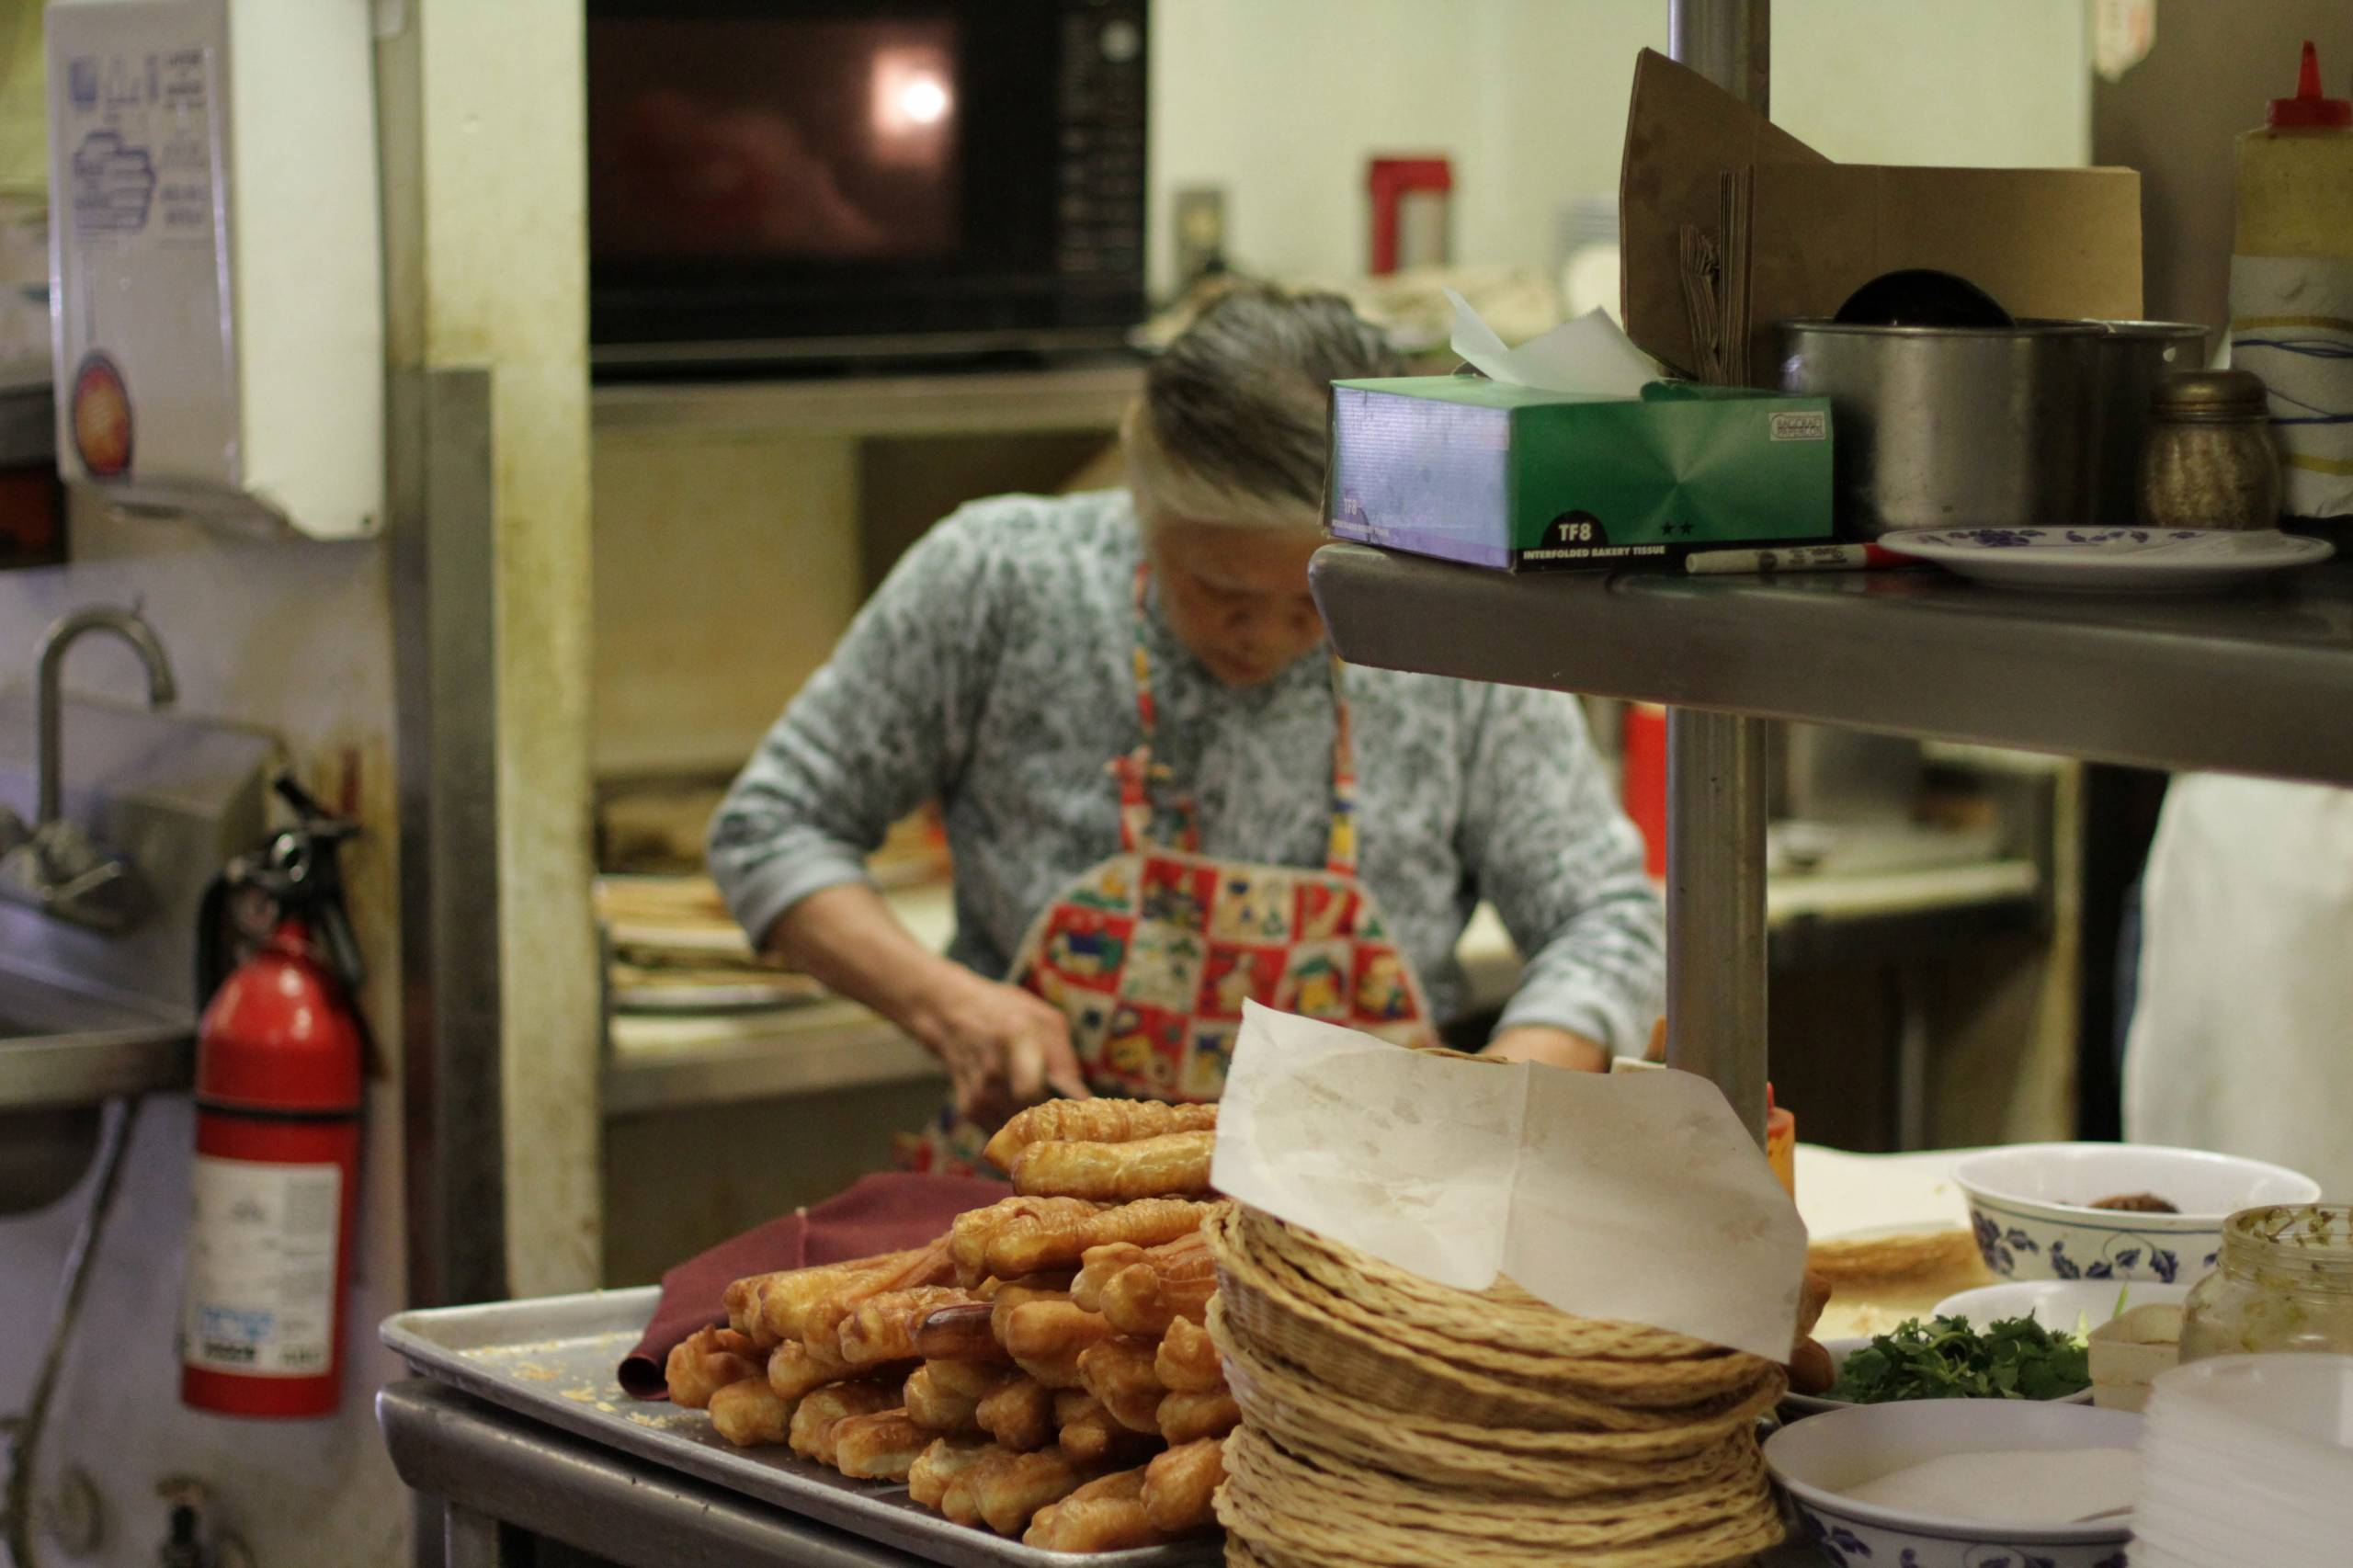 A woman preps the you tiao, or fried crullers, in the kitchen at Chef Wu